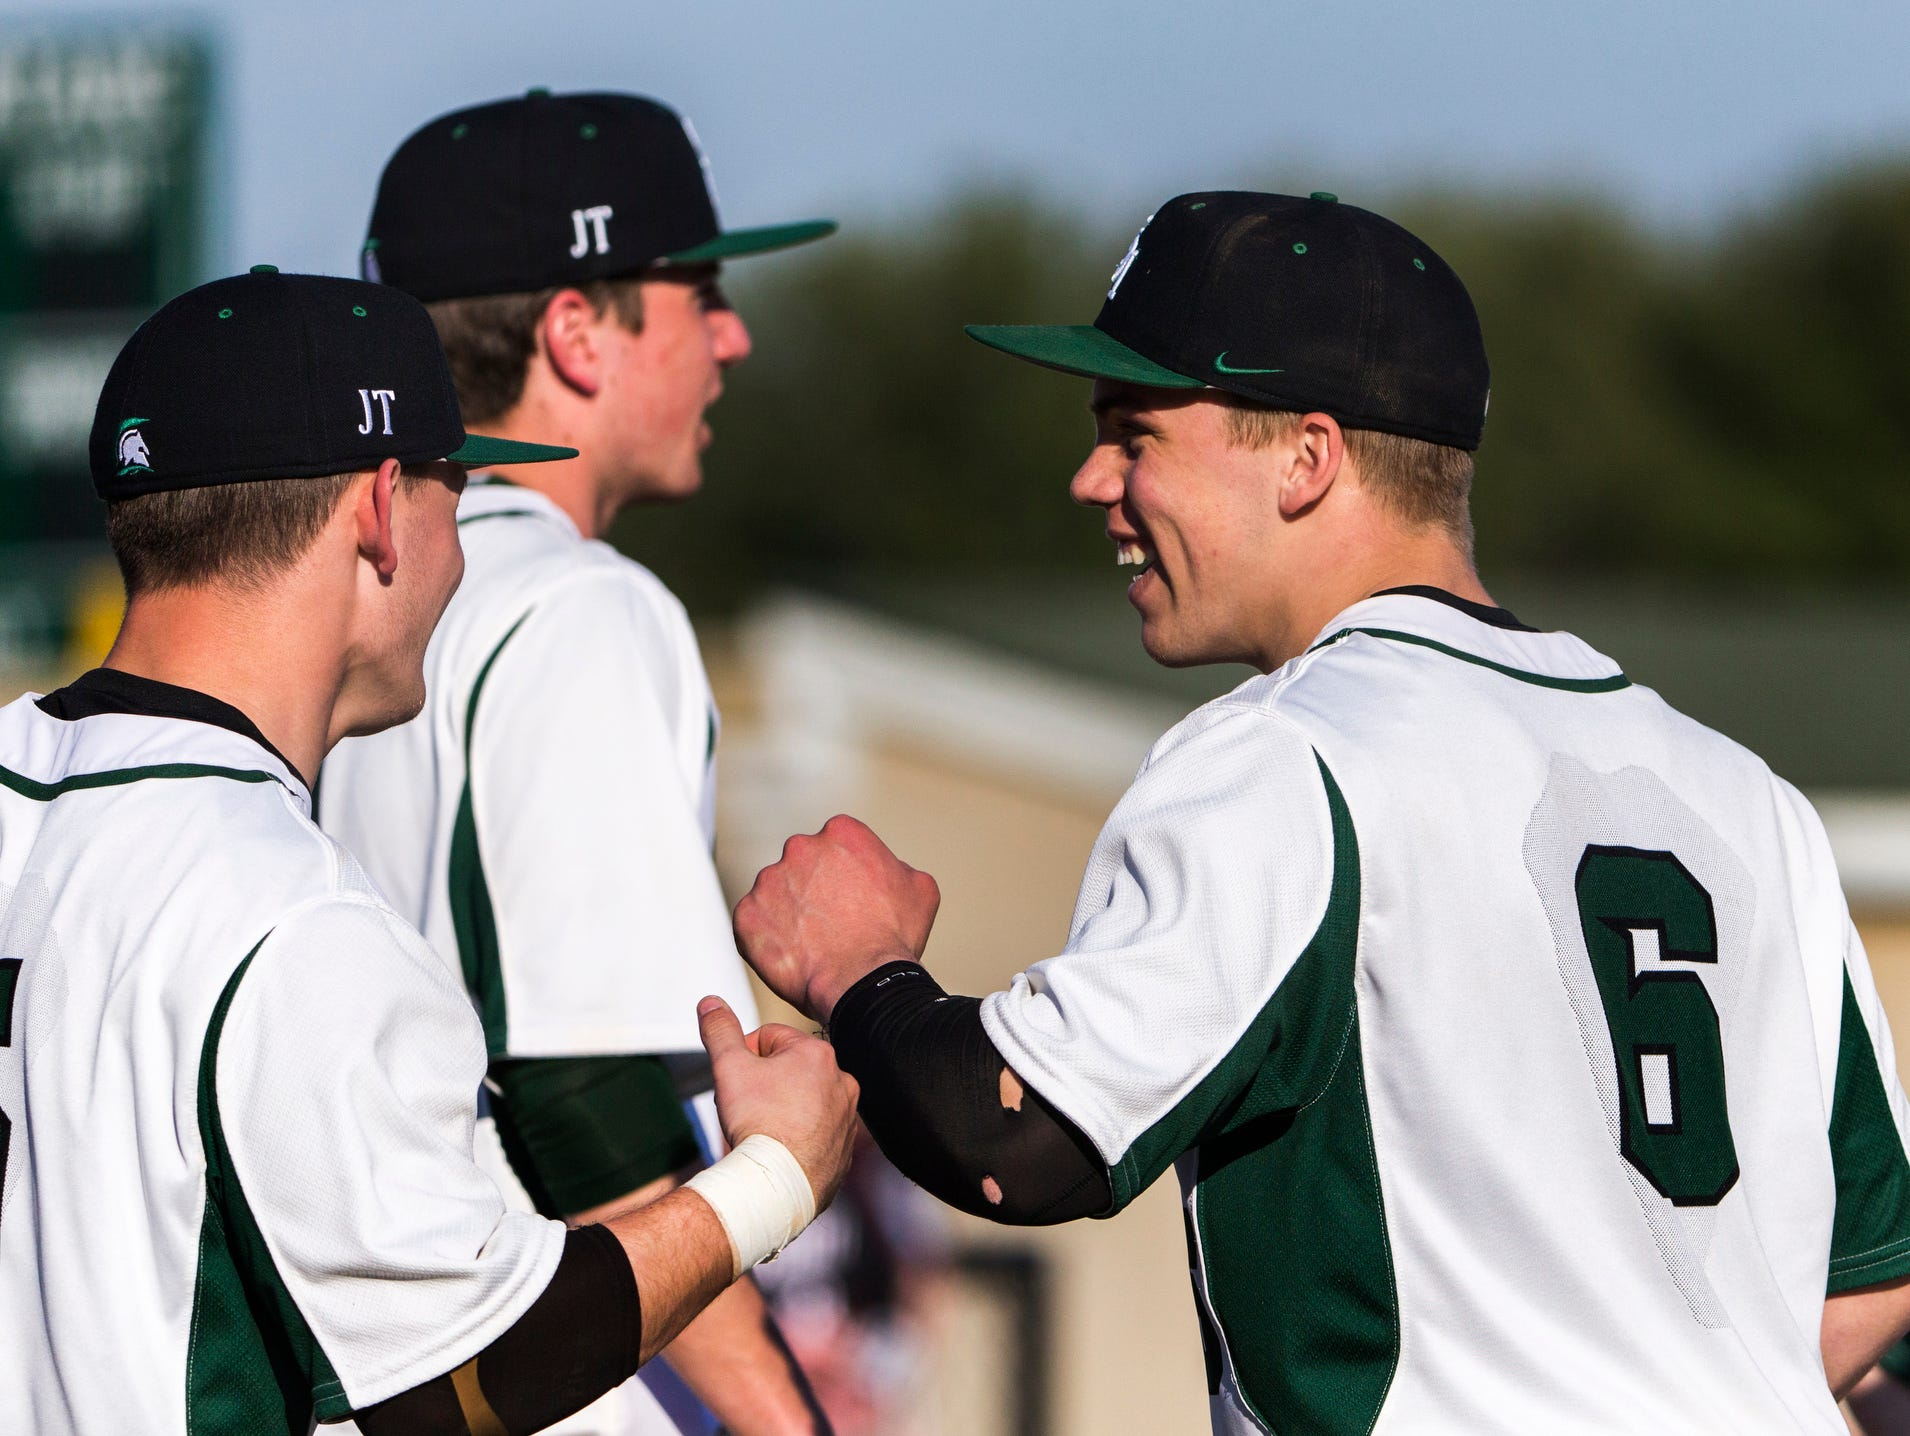 St. Mark's pitcher Andrew Reich (No. 6) celebrates with teammates after throwing a no-hitter in St. Mark's 12-0 win over Hodgson at St. Mark's High School on Wednesday afternoon.